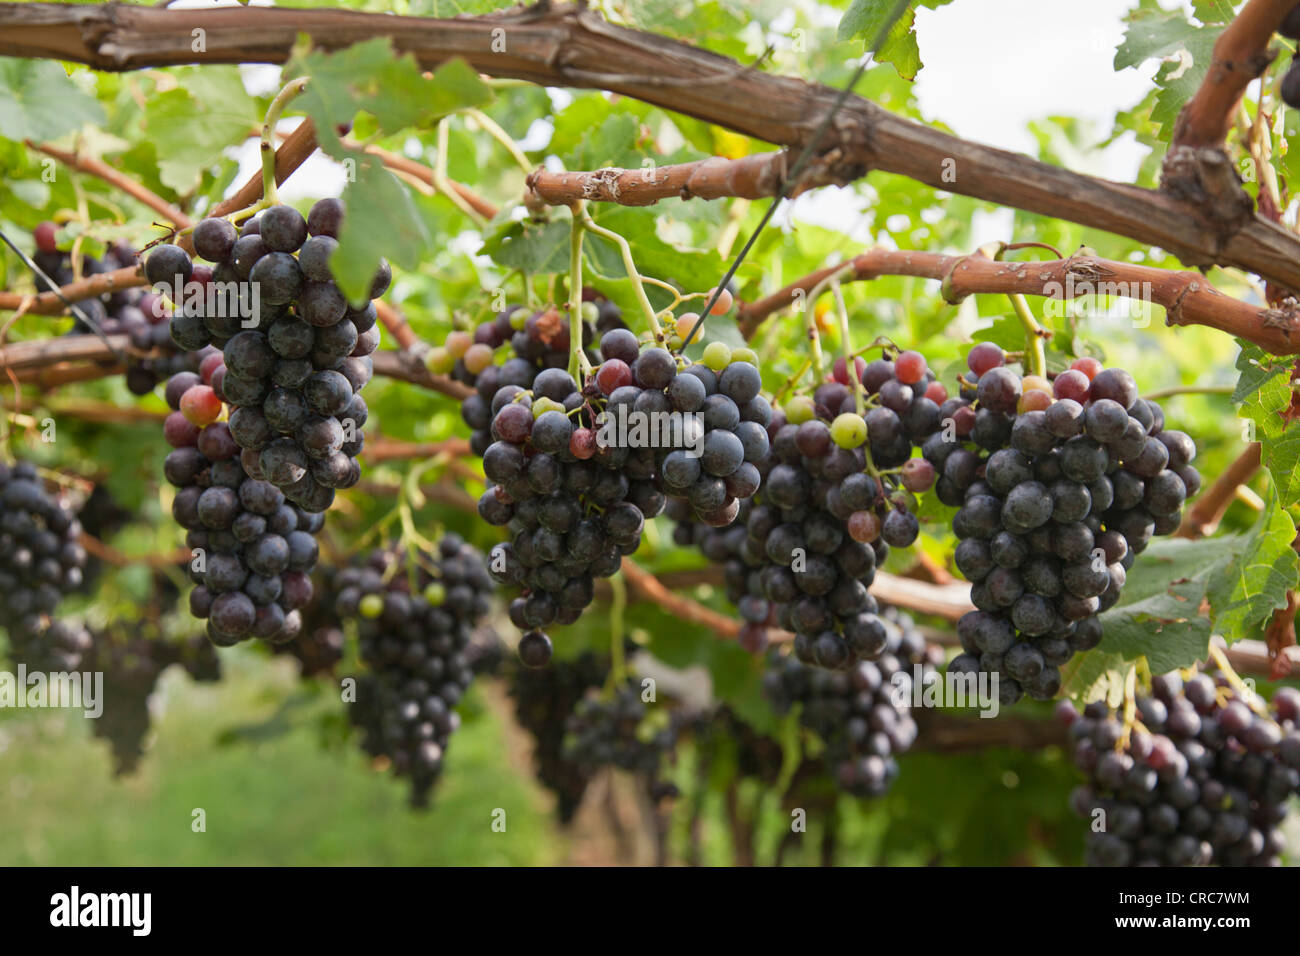 Close up of grapes on vine in vineyard Stock Photo